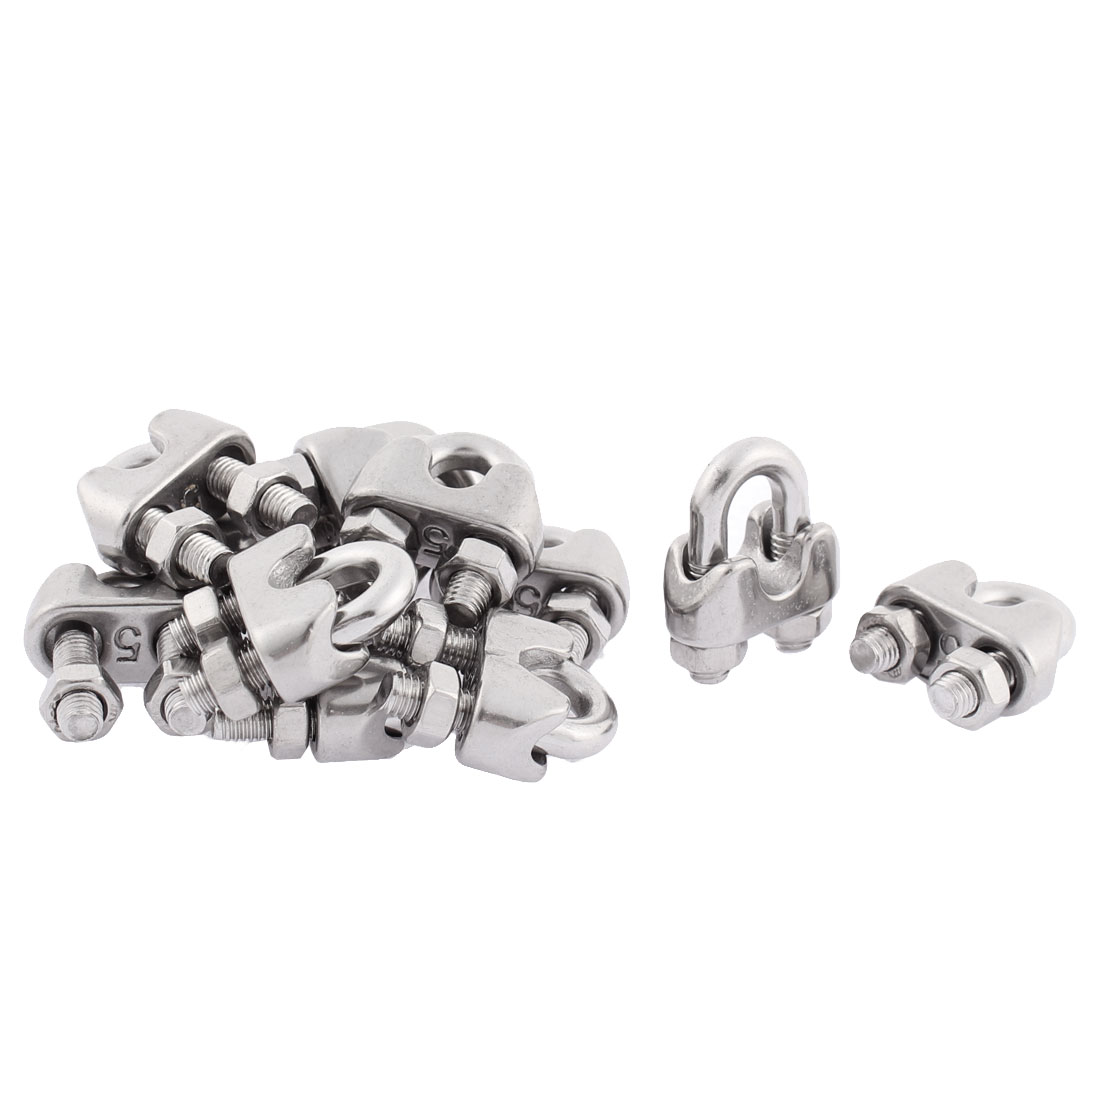 12PCS Stainless Steel Cable Clip Saddle Clamp for Wire Ropes